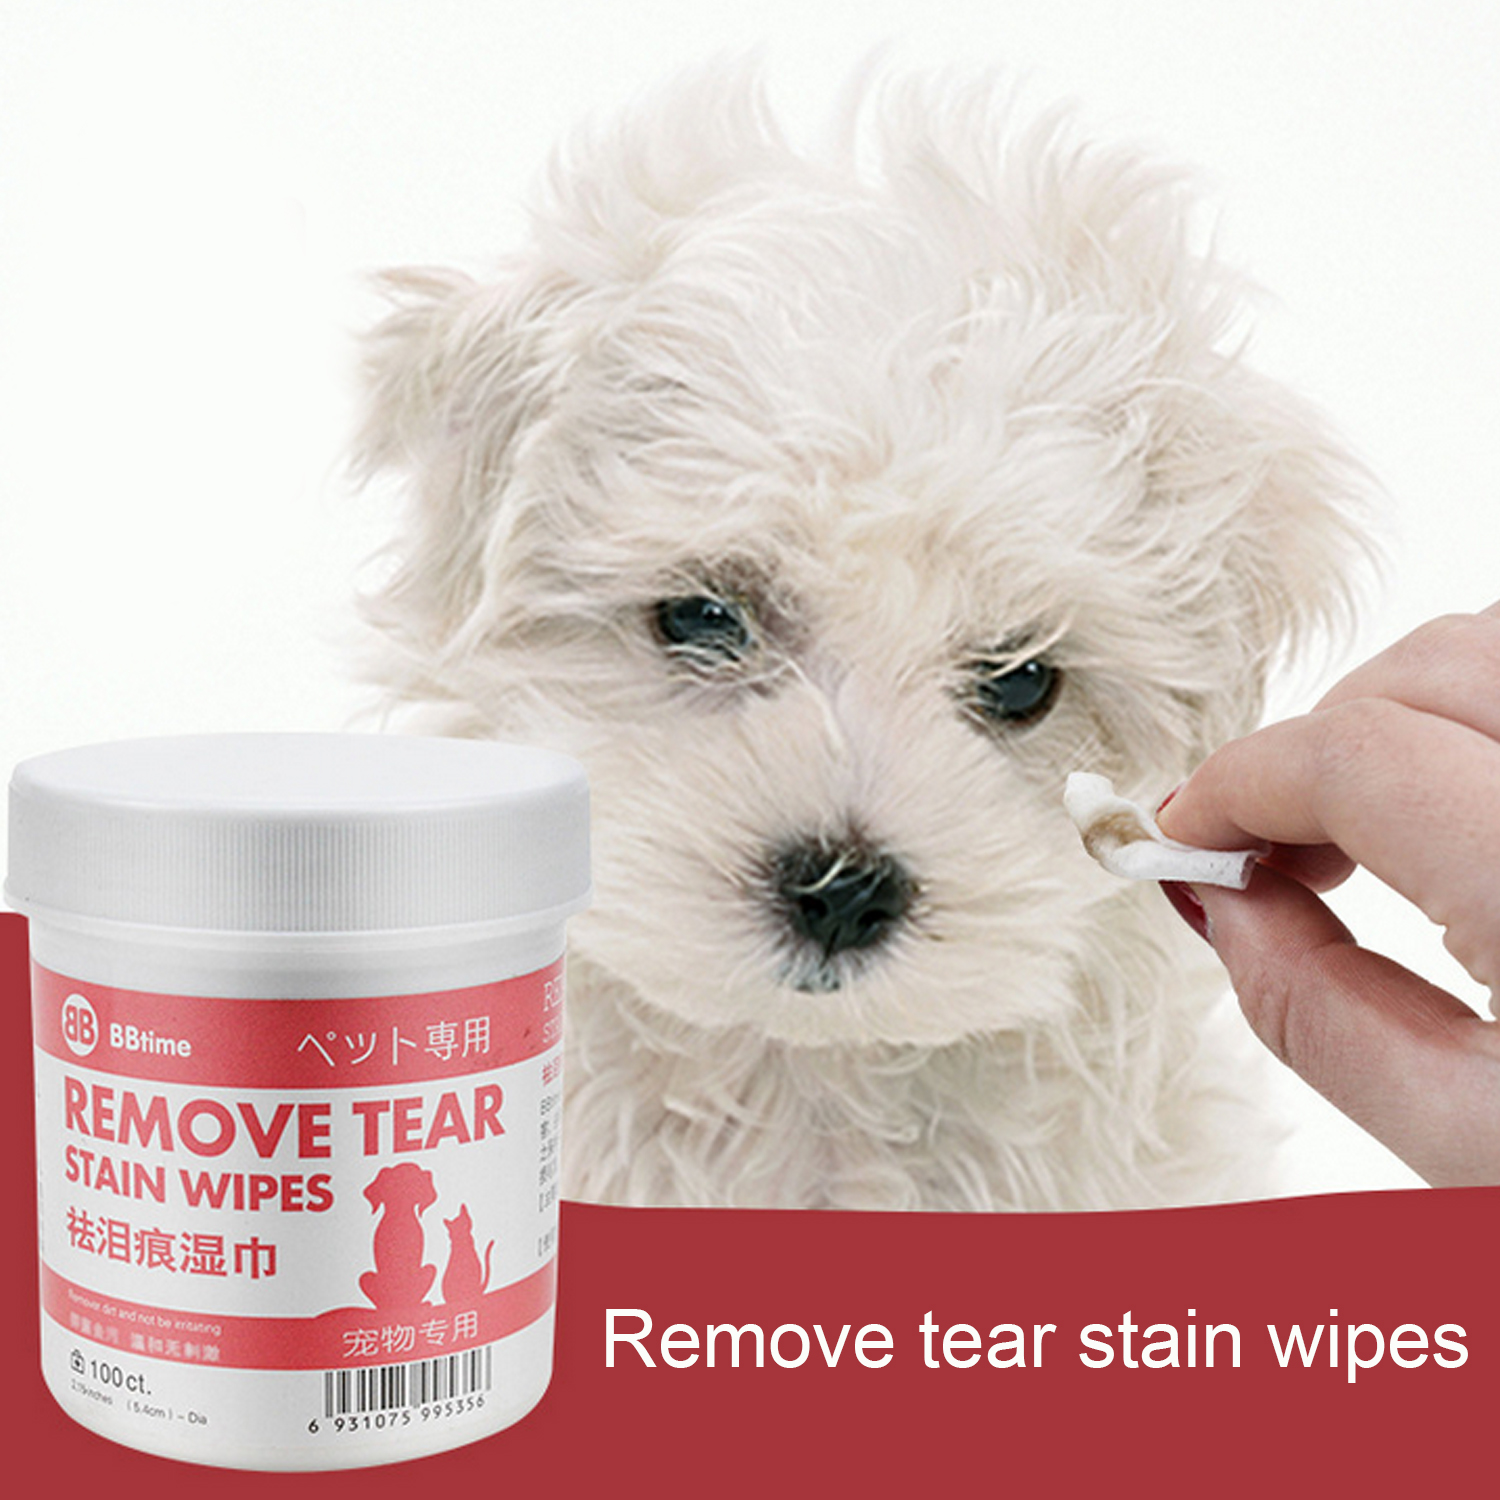 100pcs Pet Eye Wet Wipes Dog Cleaning Pads Facial Tear Stain Remover Wipes For Cat Dog Puppy Teeth Eyes Ears Grooming Towels